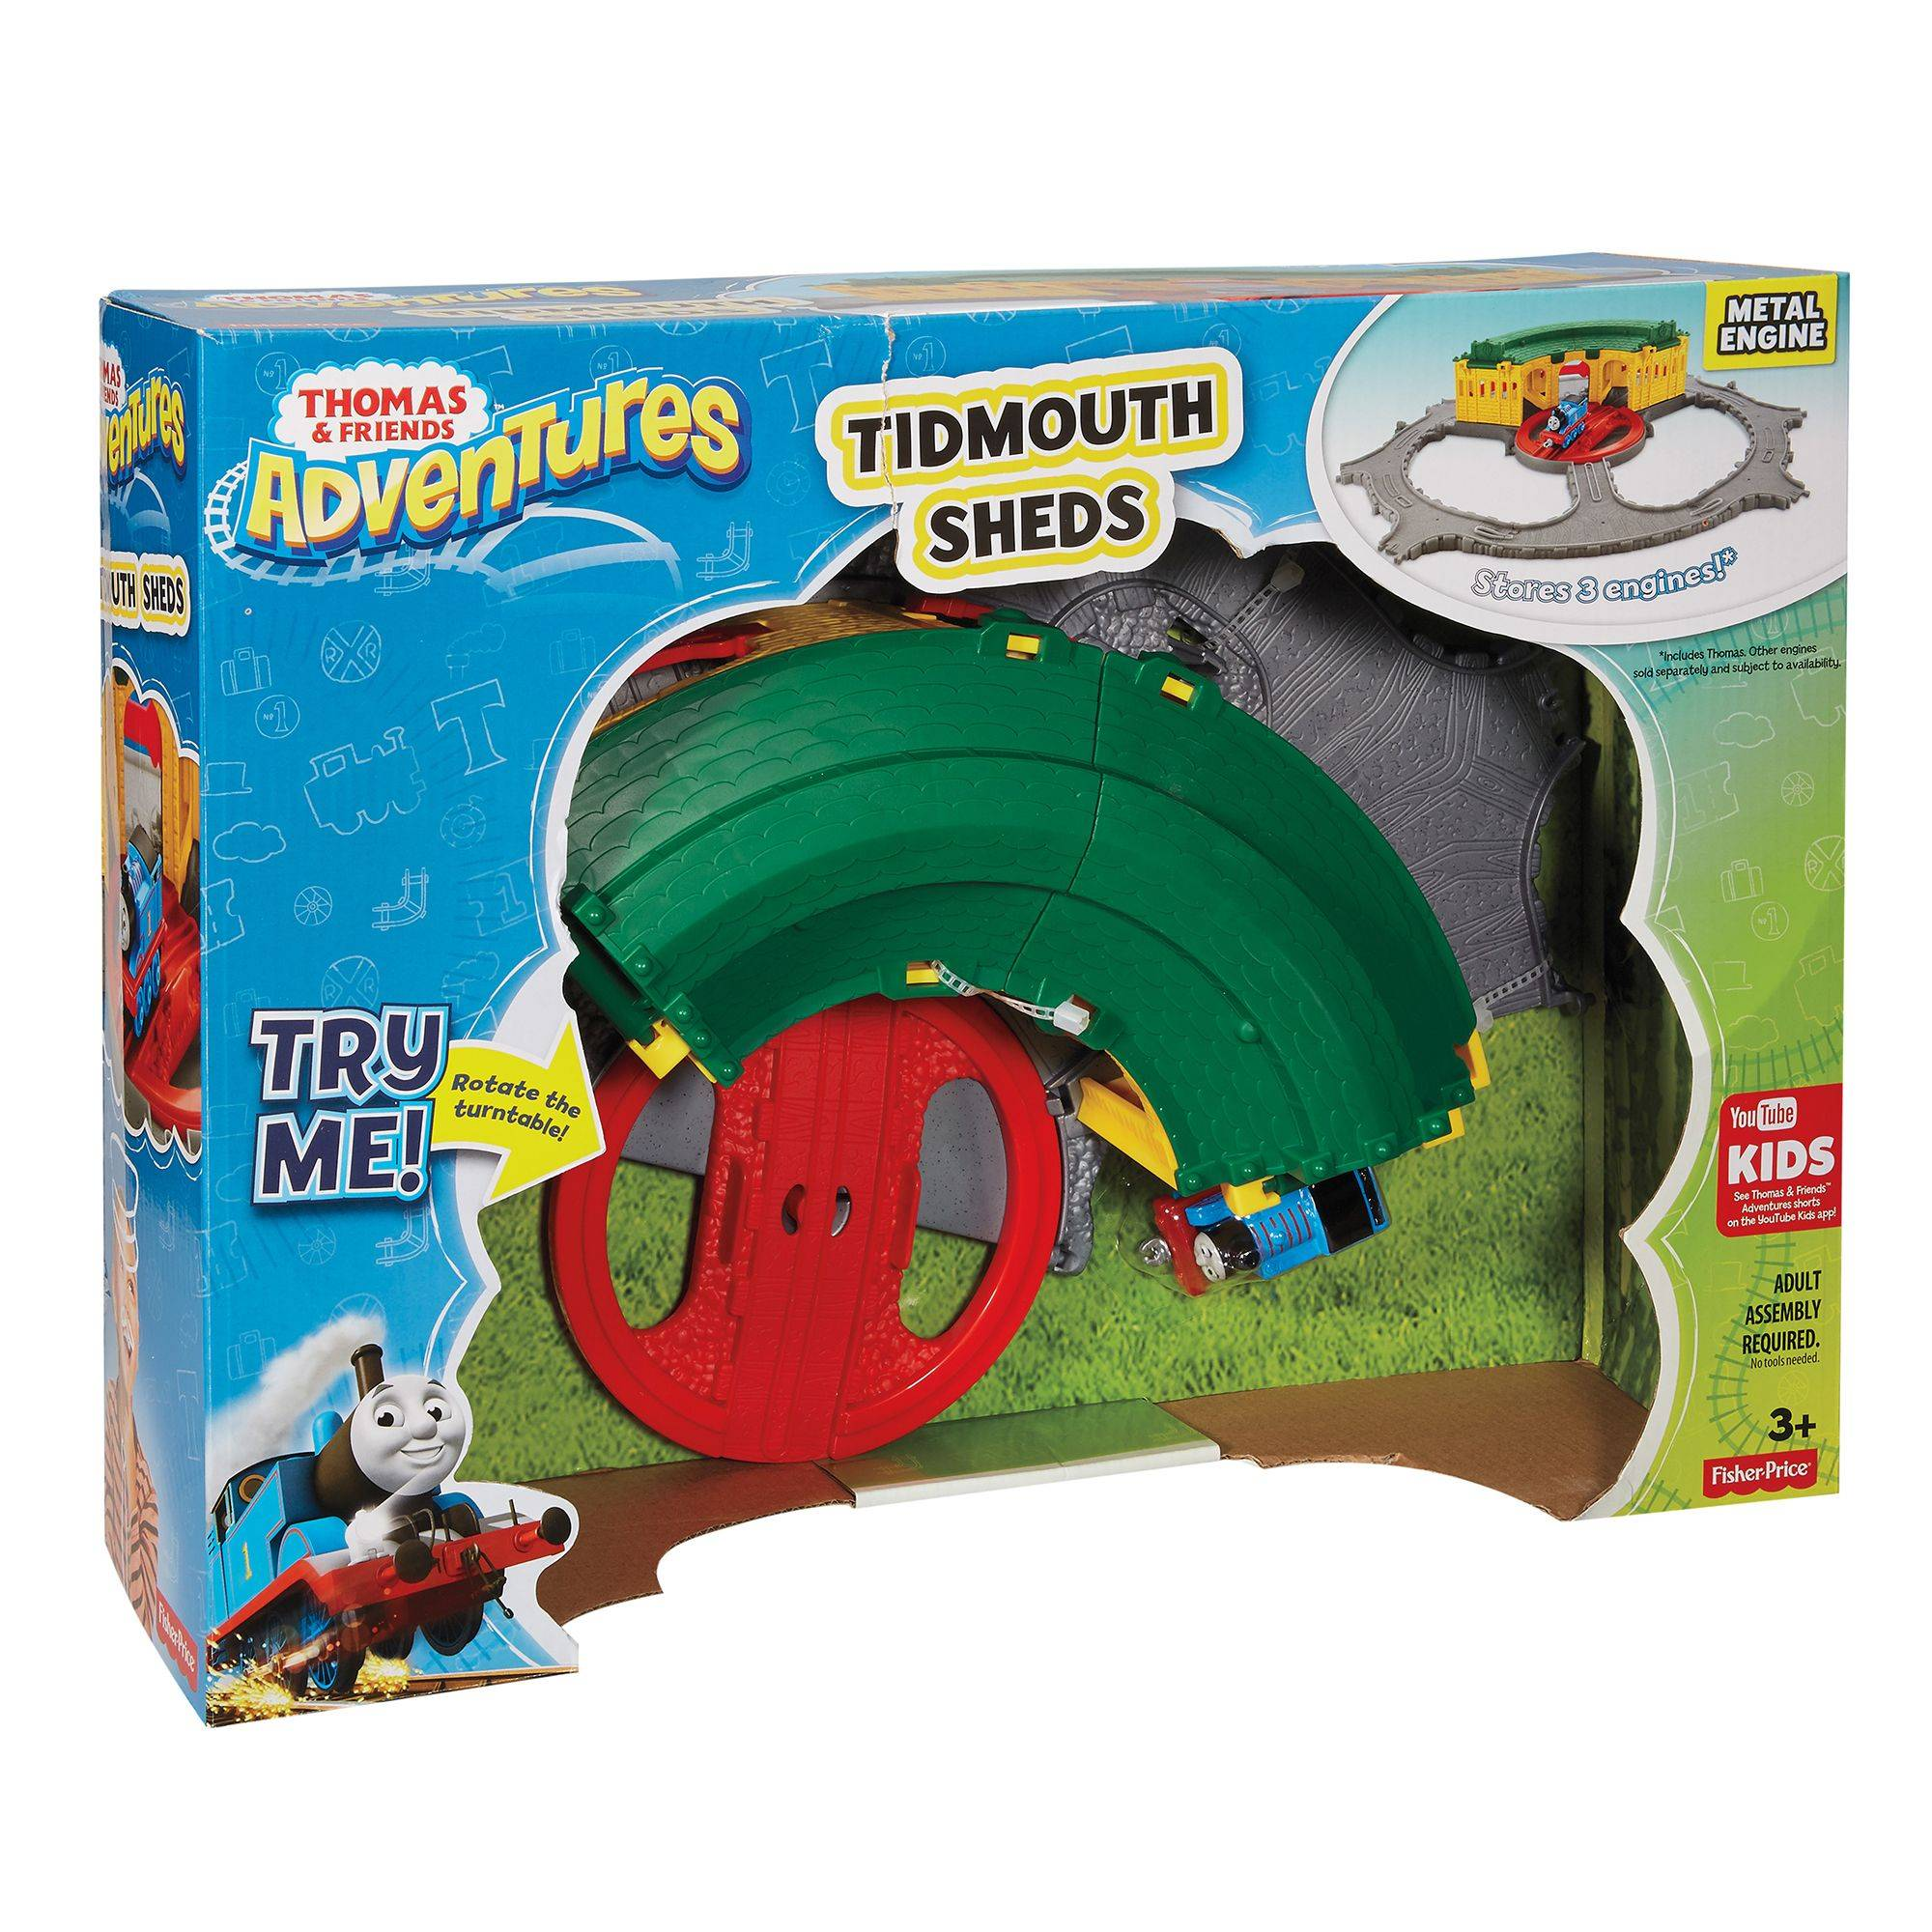 Thomas & Friends Deluxe Tidmouth Sheds